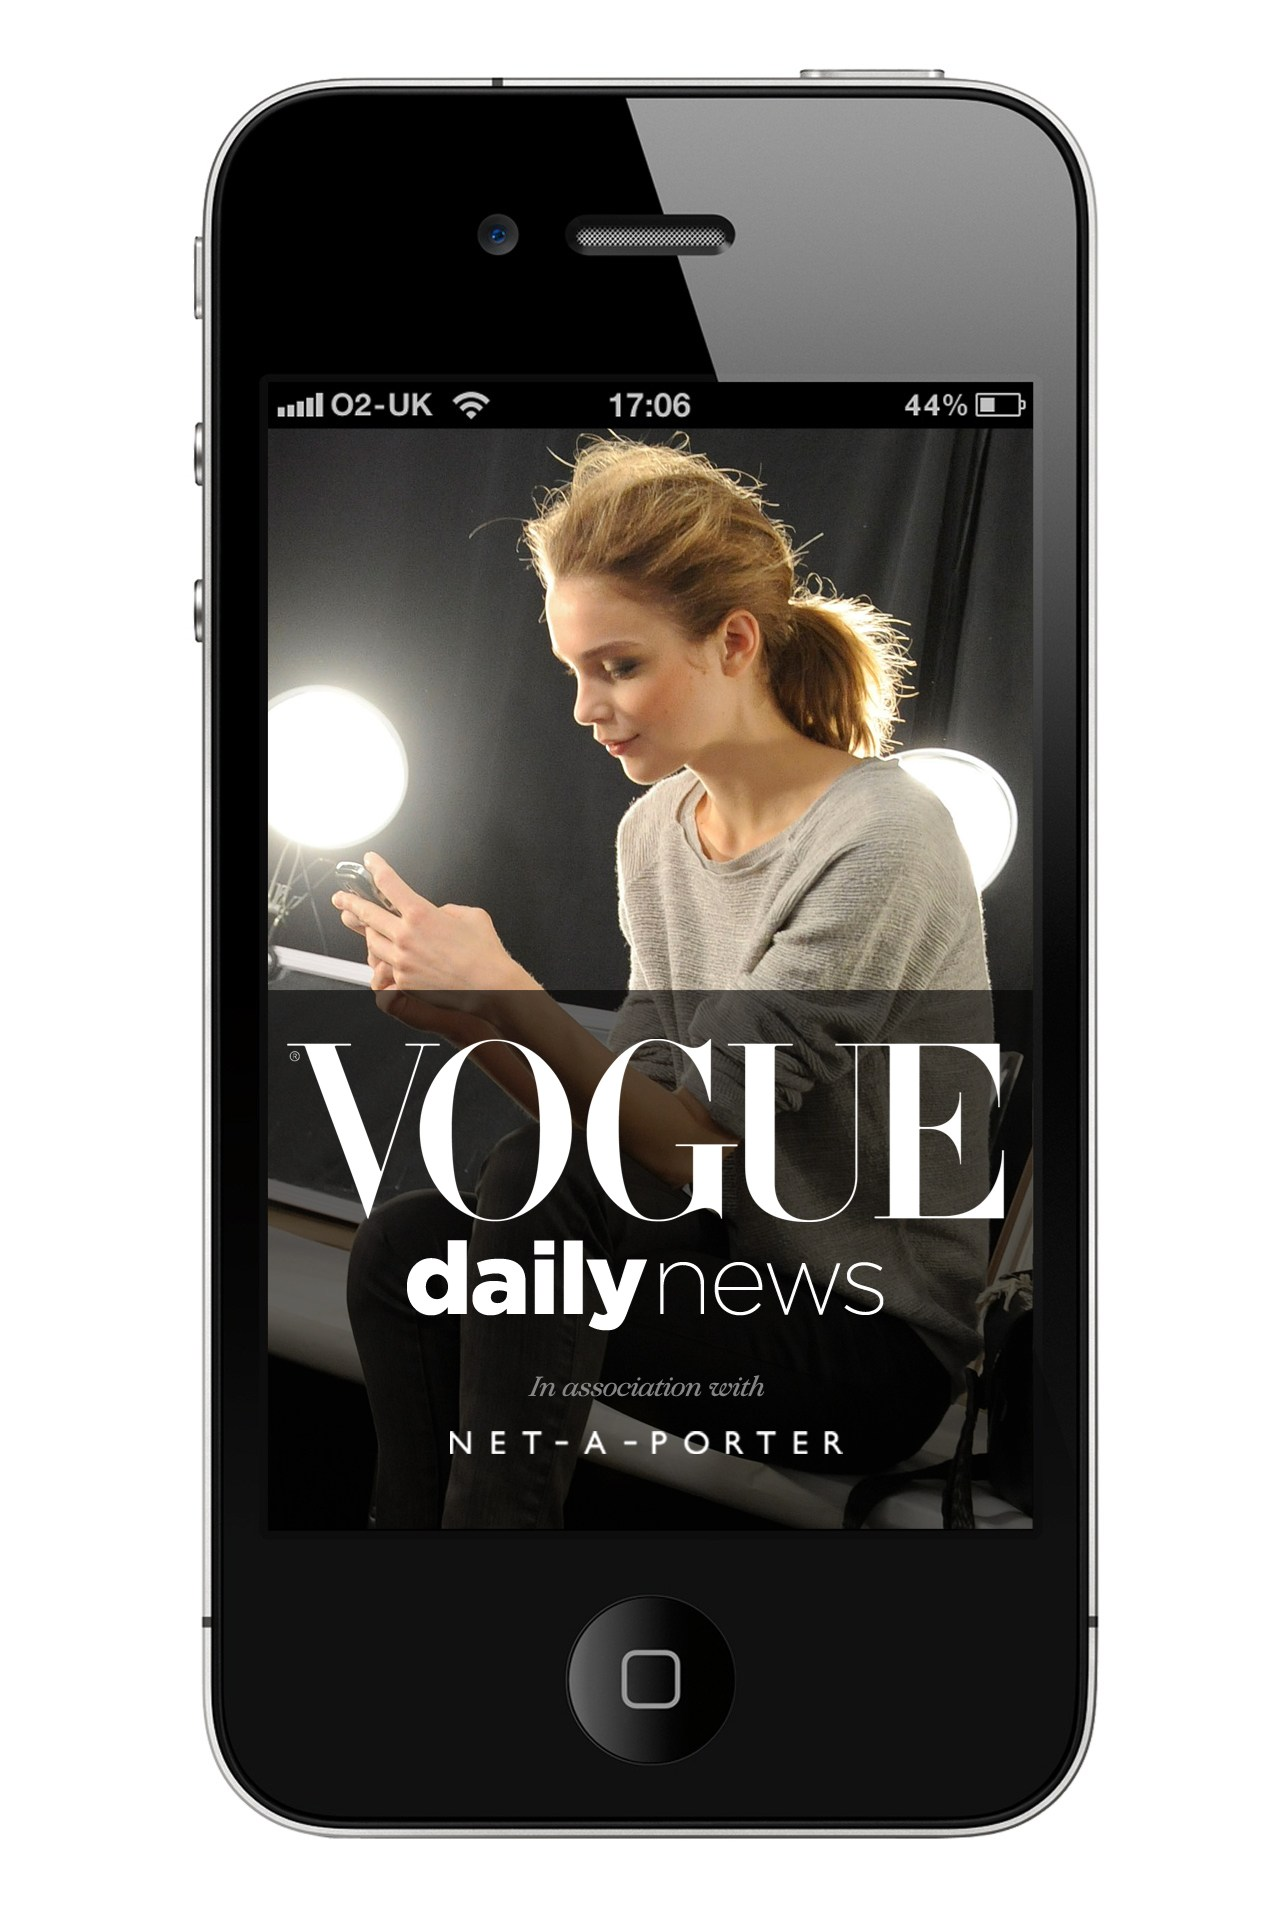 Condé Nast Sets Policy on Native Advertising